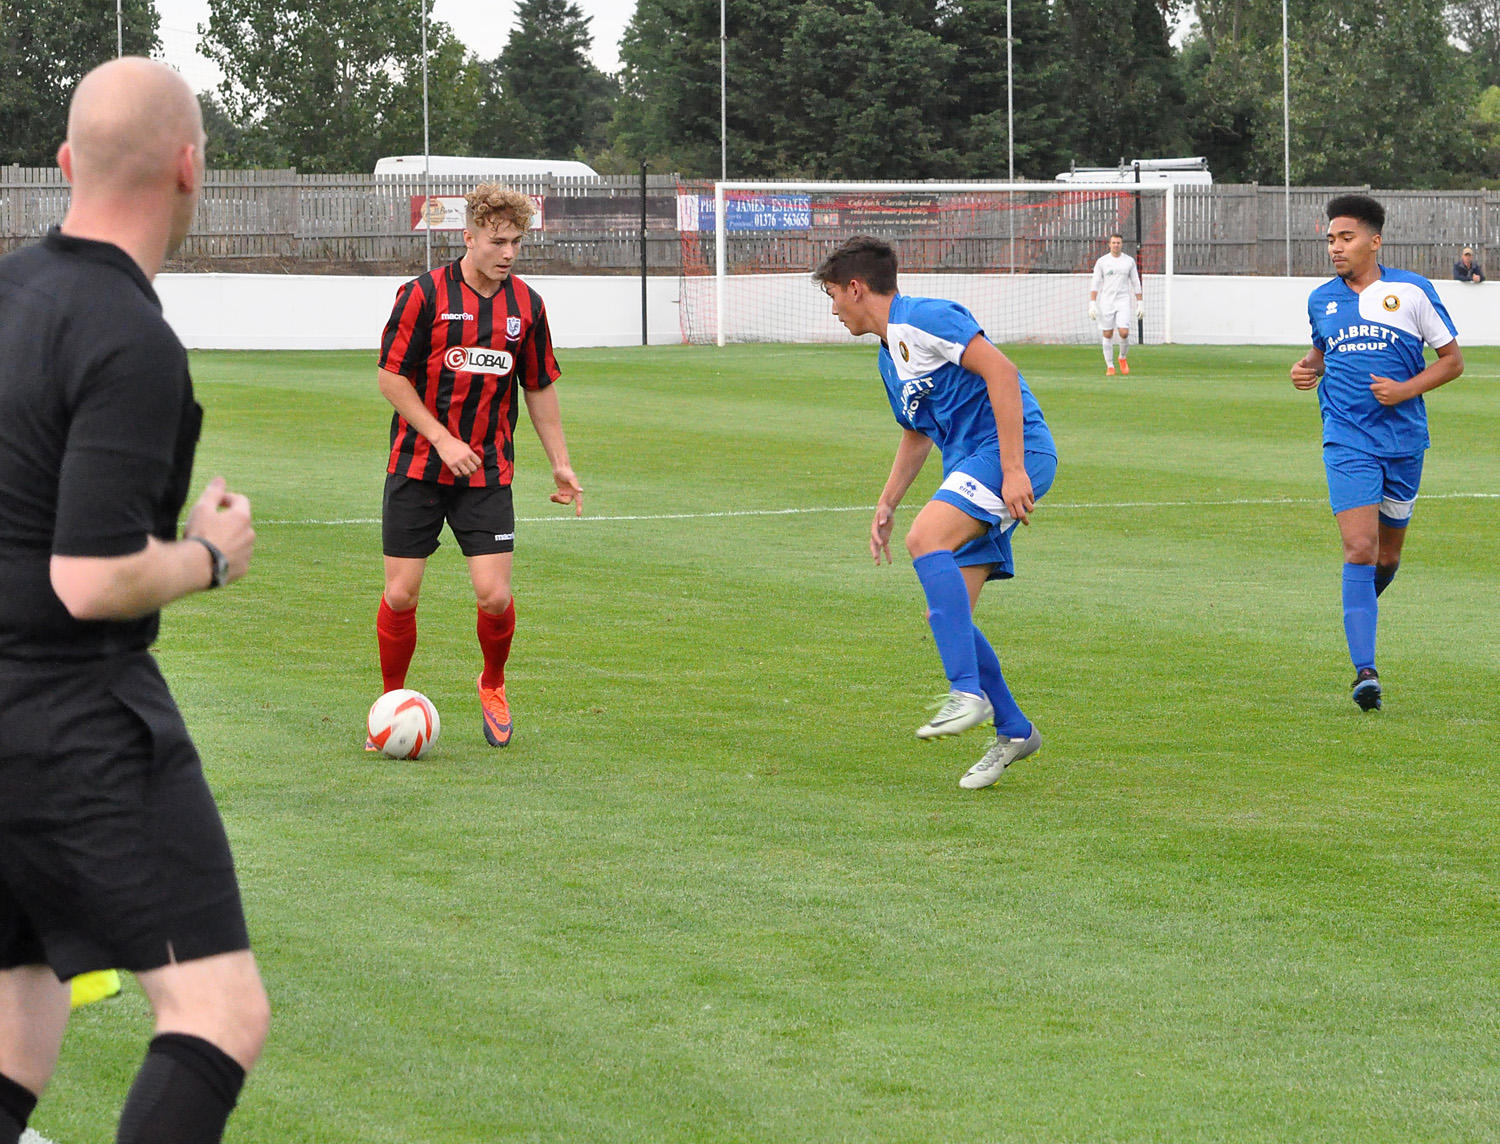 coggeshall-5-1-stanway-rovers-01-08-17-11